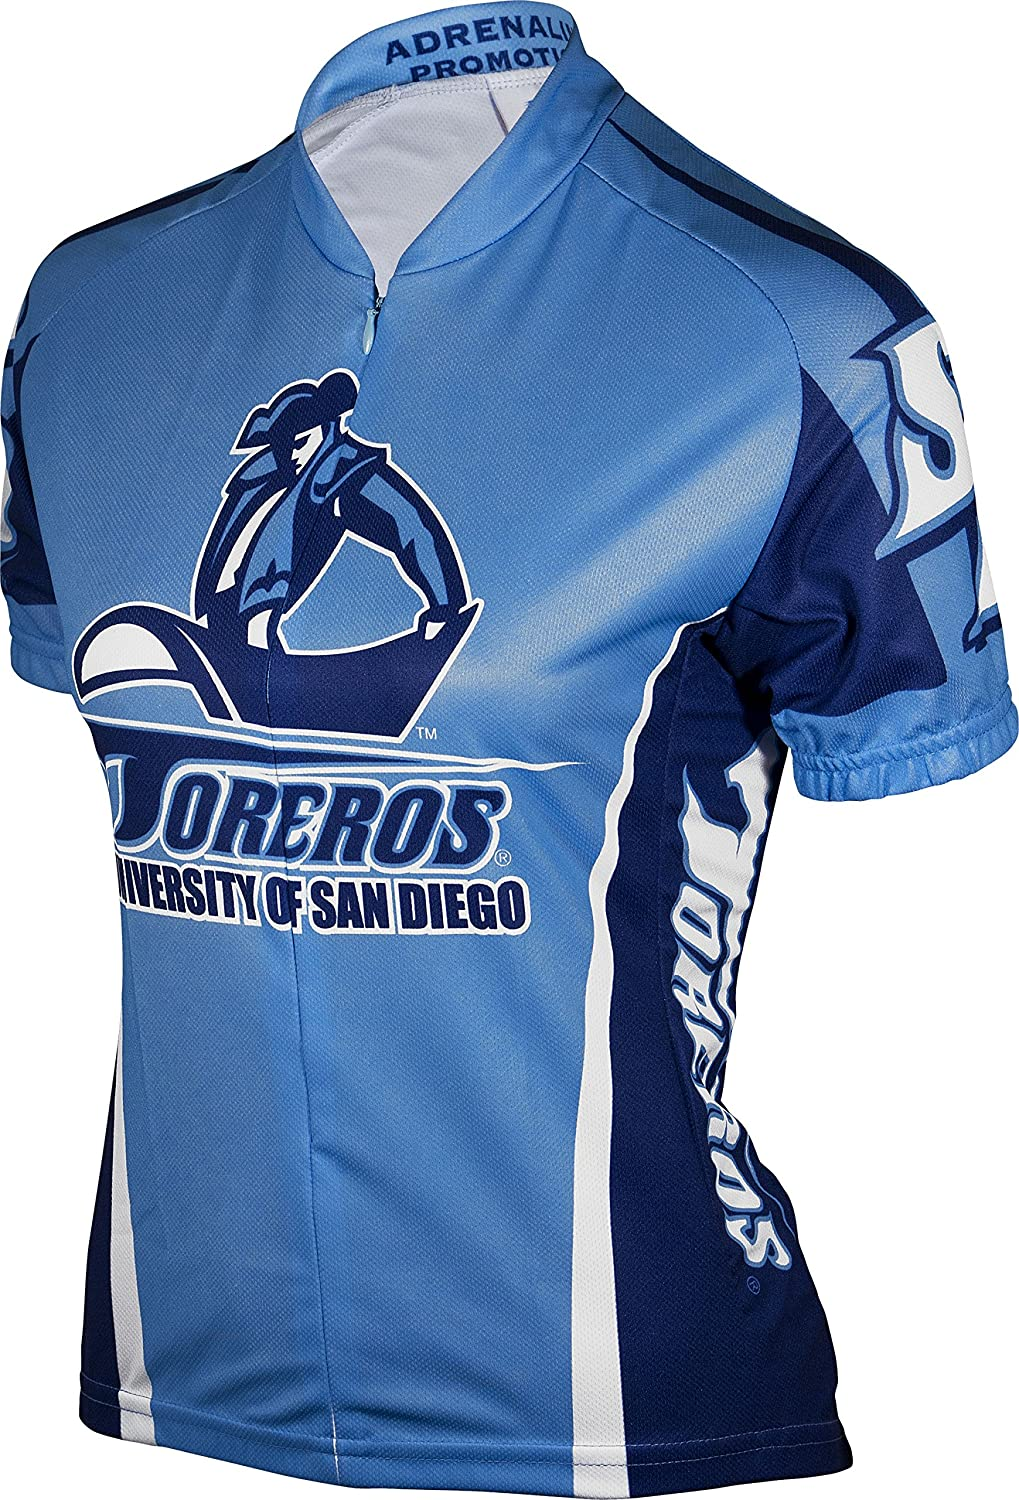 0181afb099f Amazon.com   Adrenaline Promotions NCAA San Diego State Aztecs Women s  Jersey   Sports   Outdoors